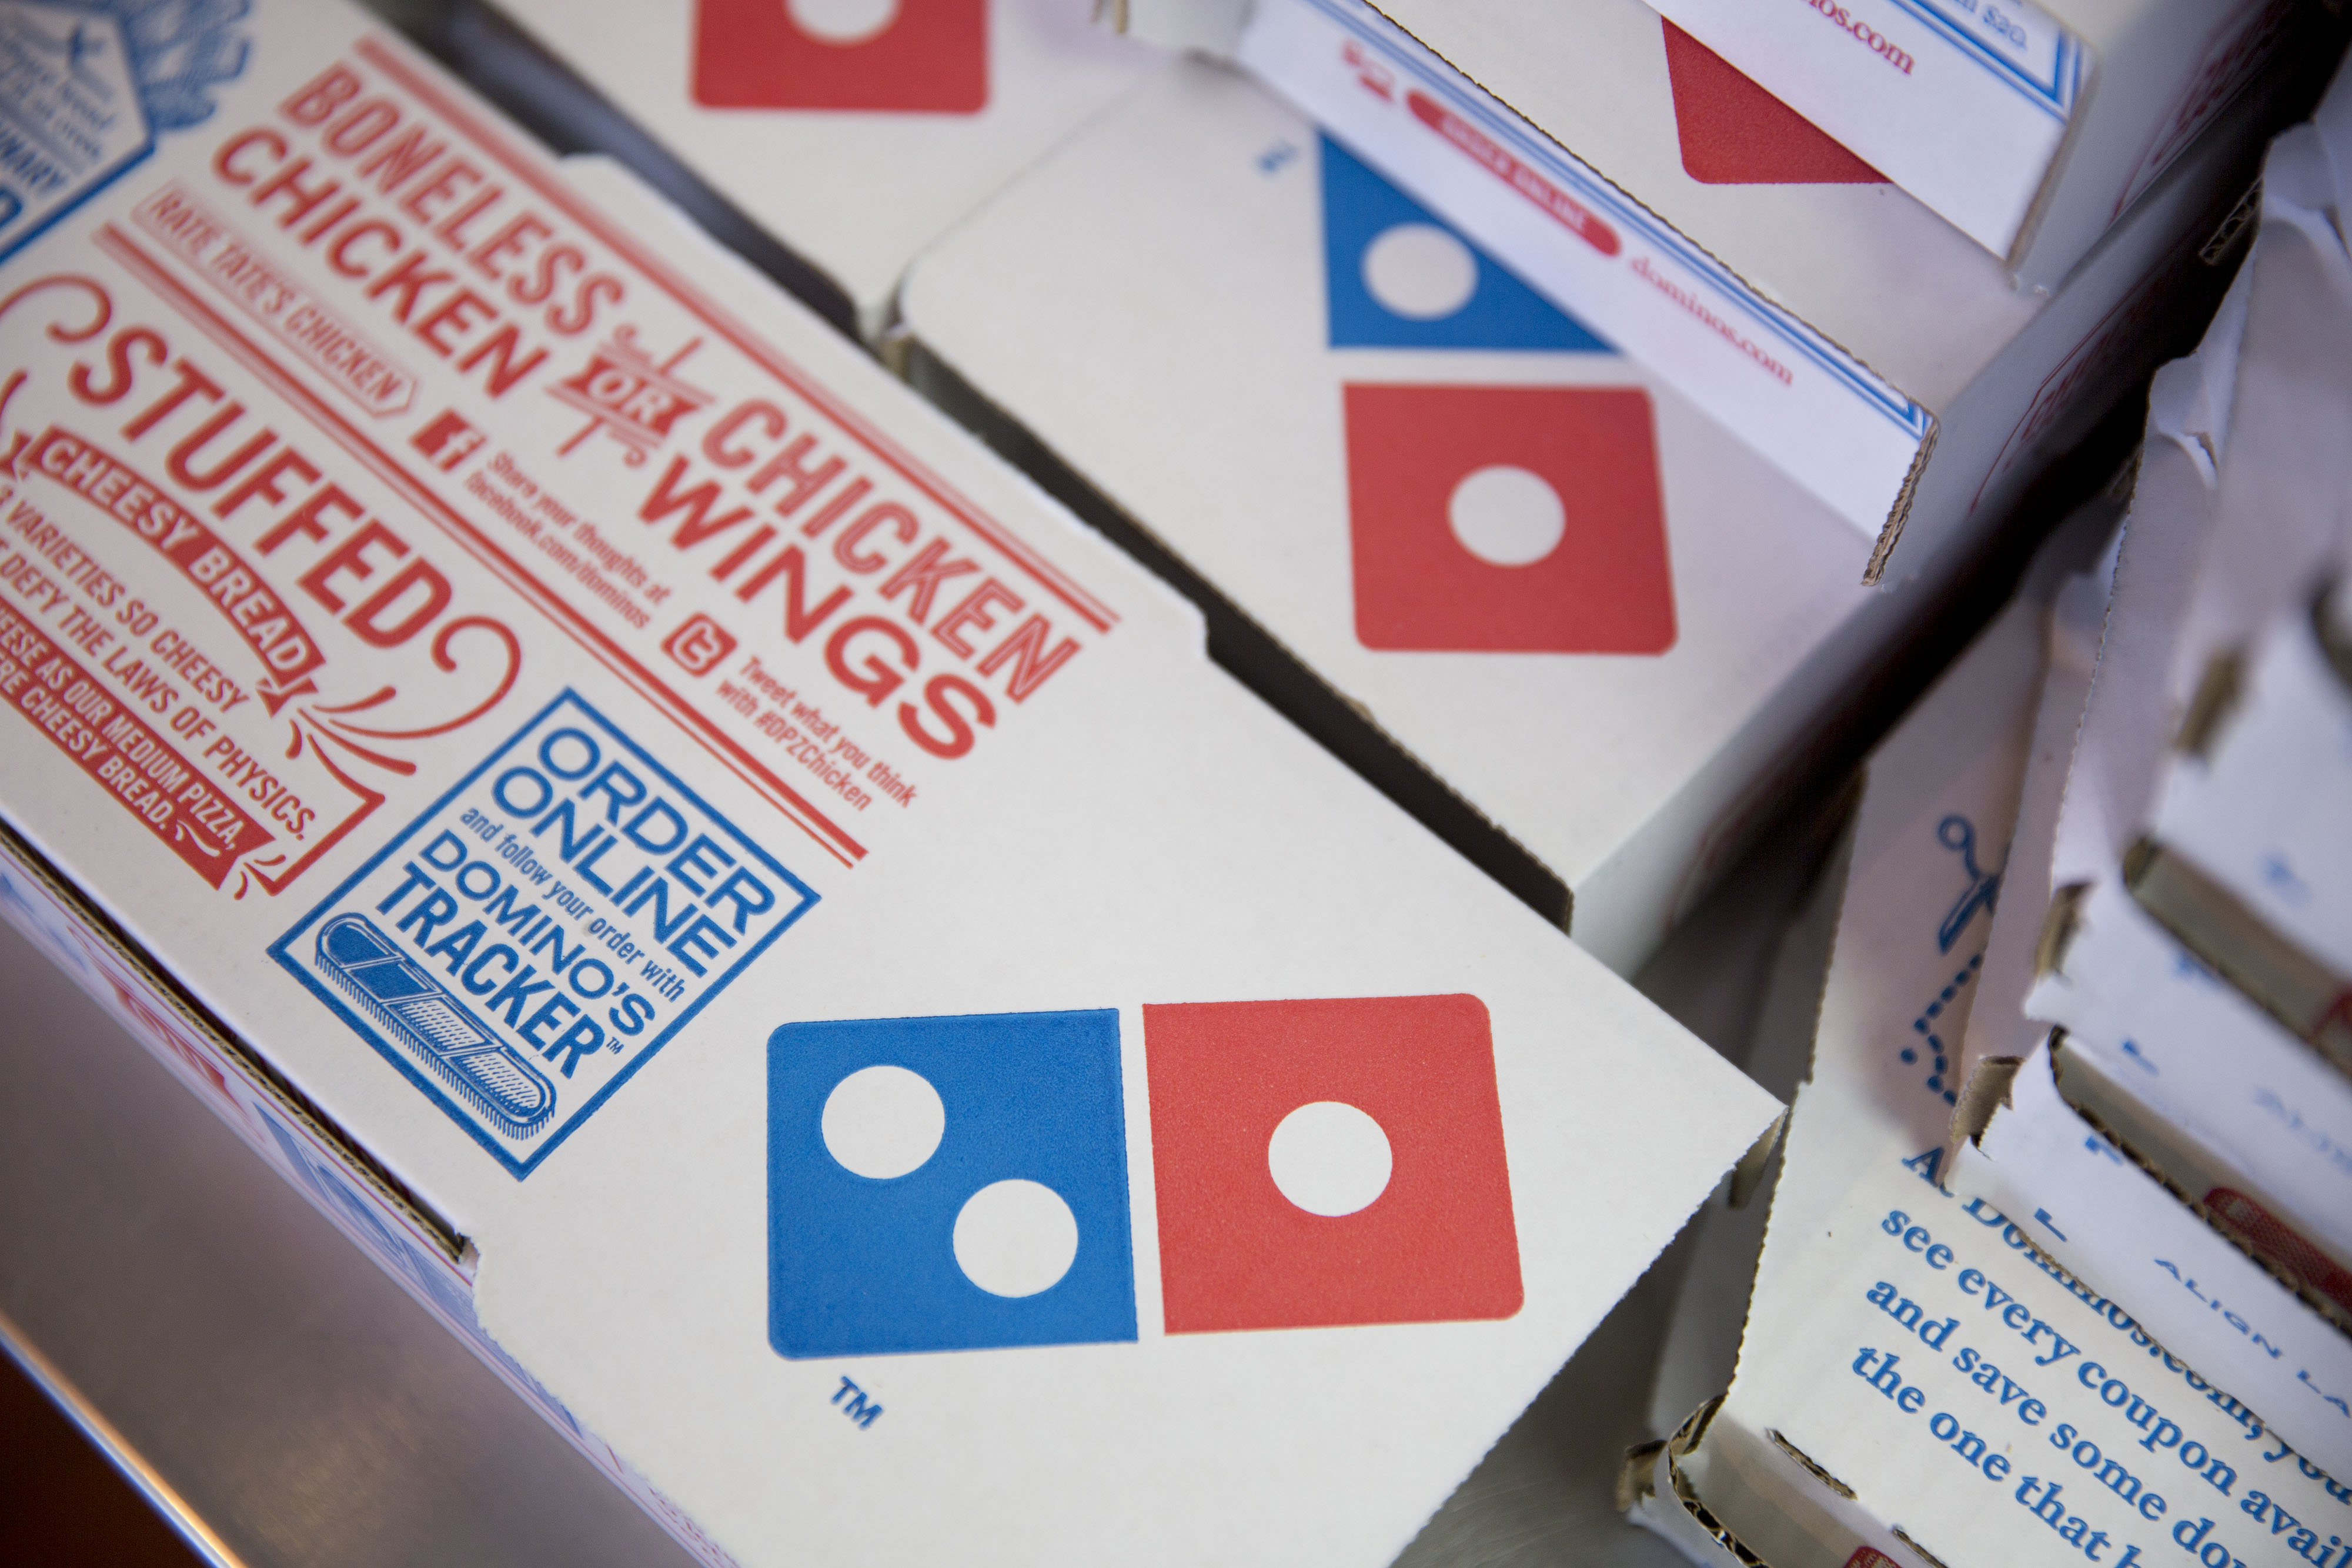 Boxes sit stacked at a Domino's Pizza Inc. restaurant.